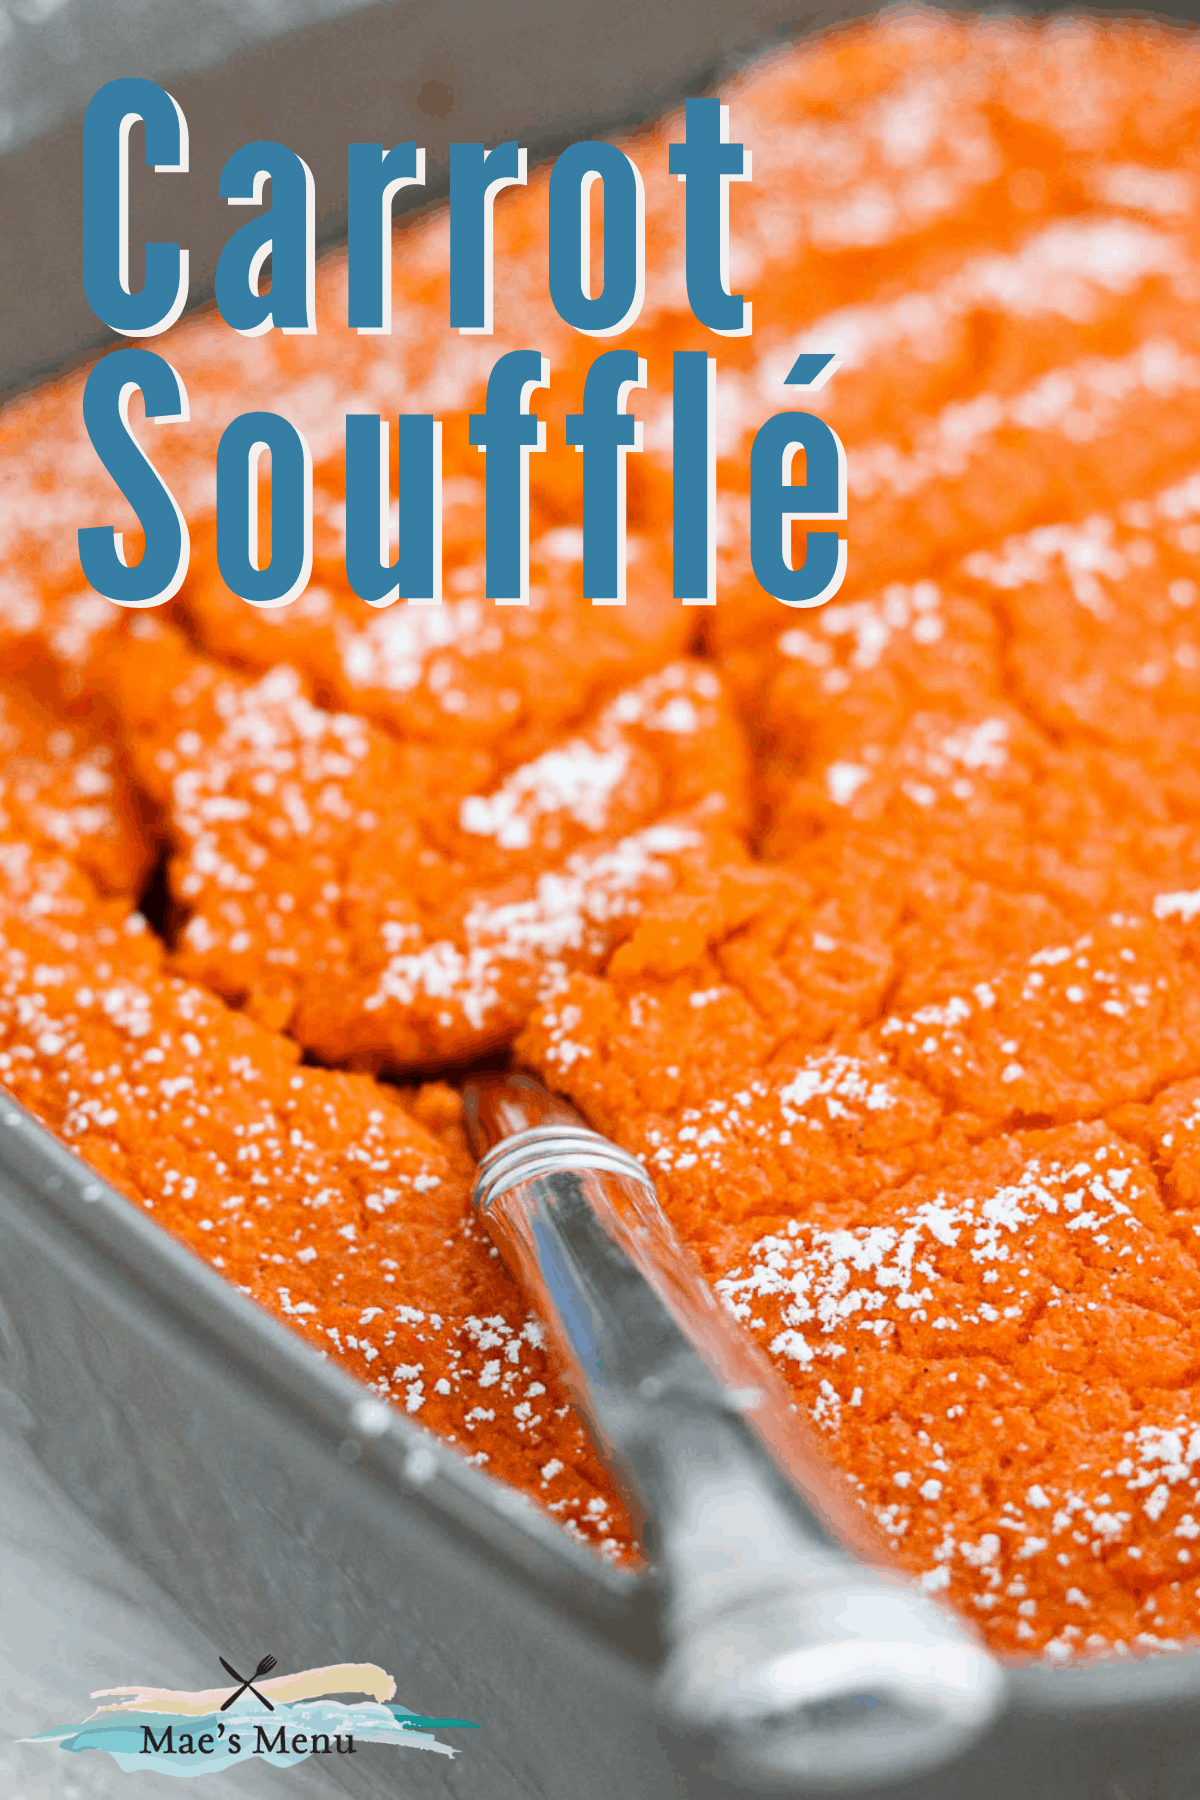 A pinterest pin for carrot souffle with an up-close shot of a spoon in the pan